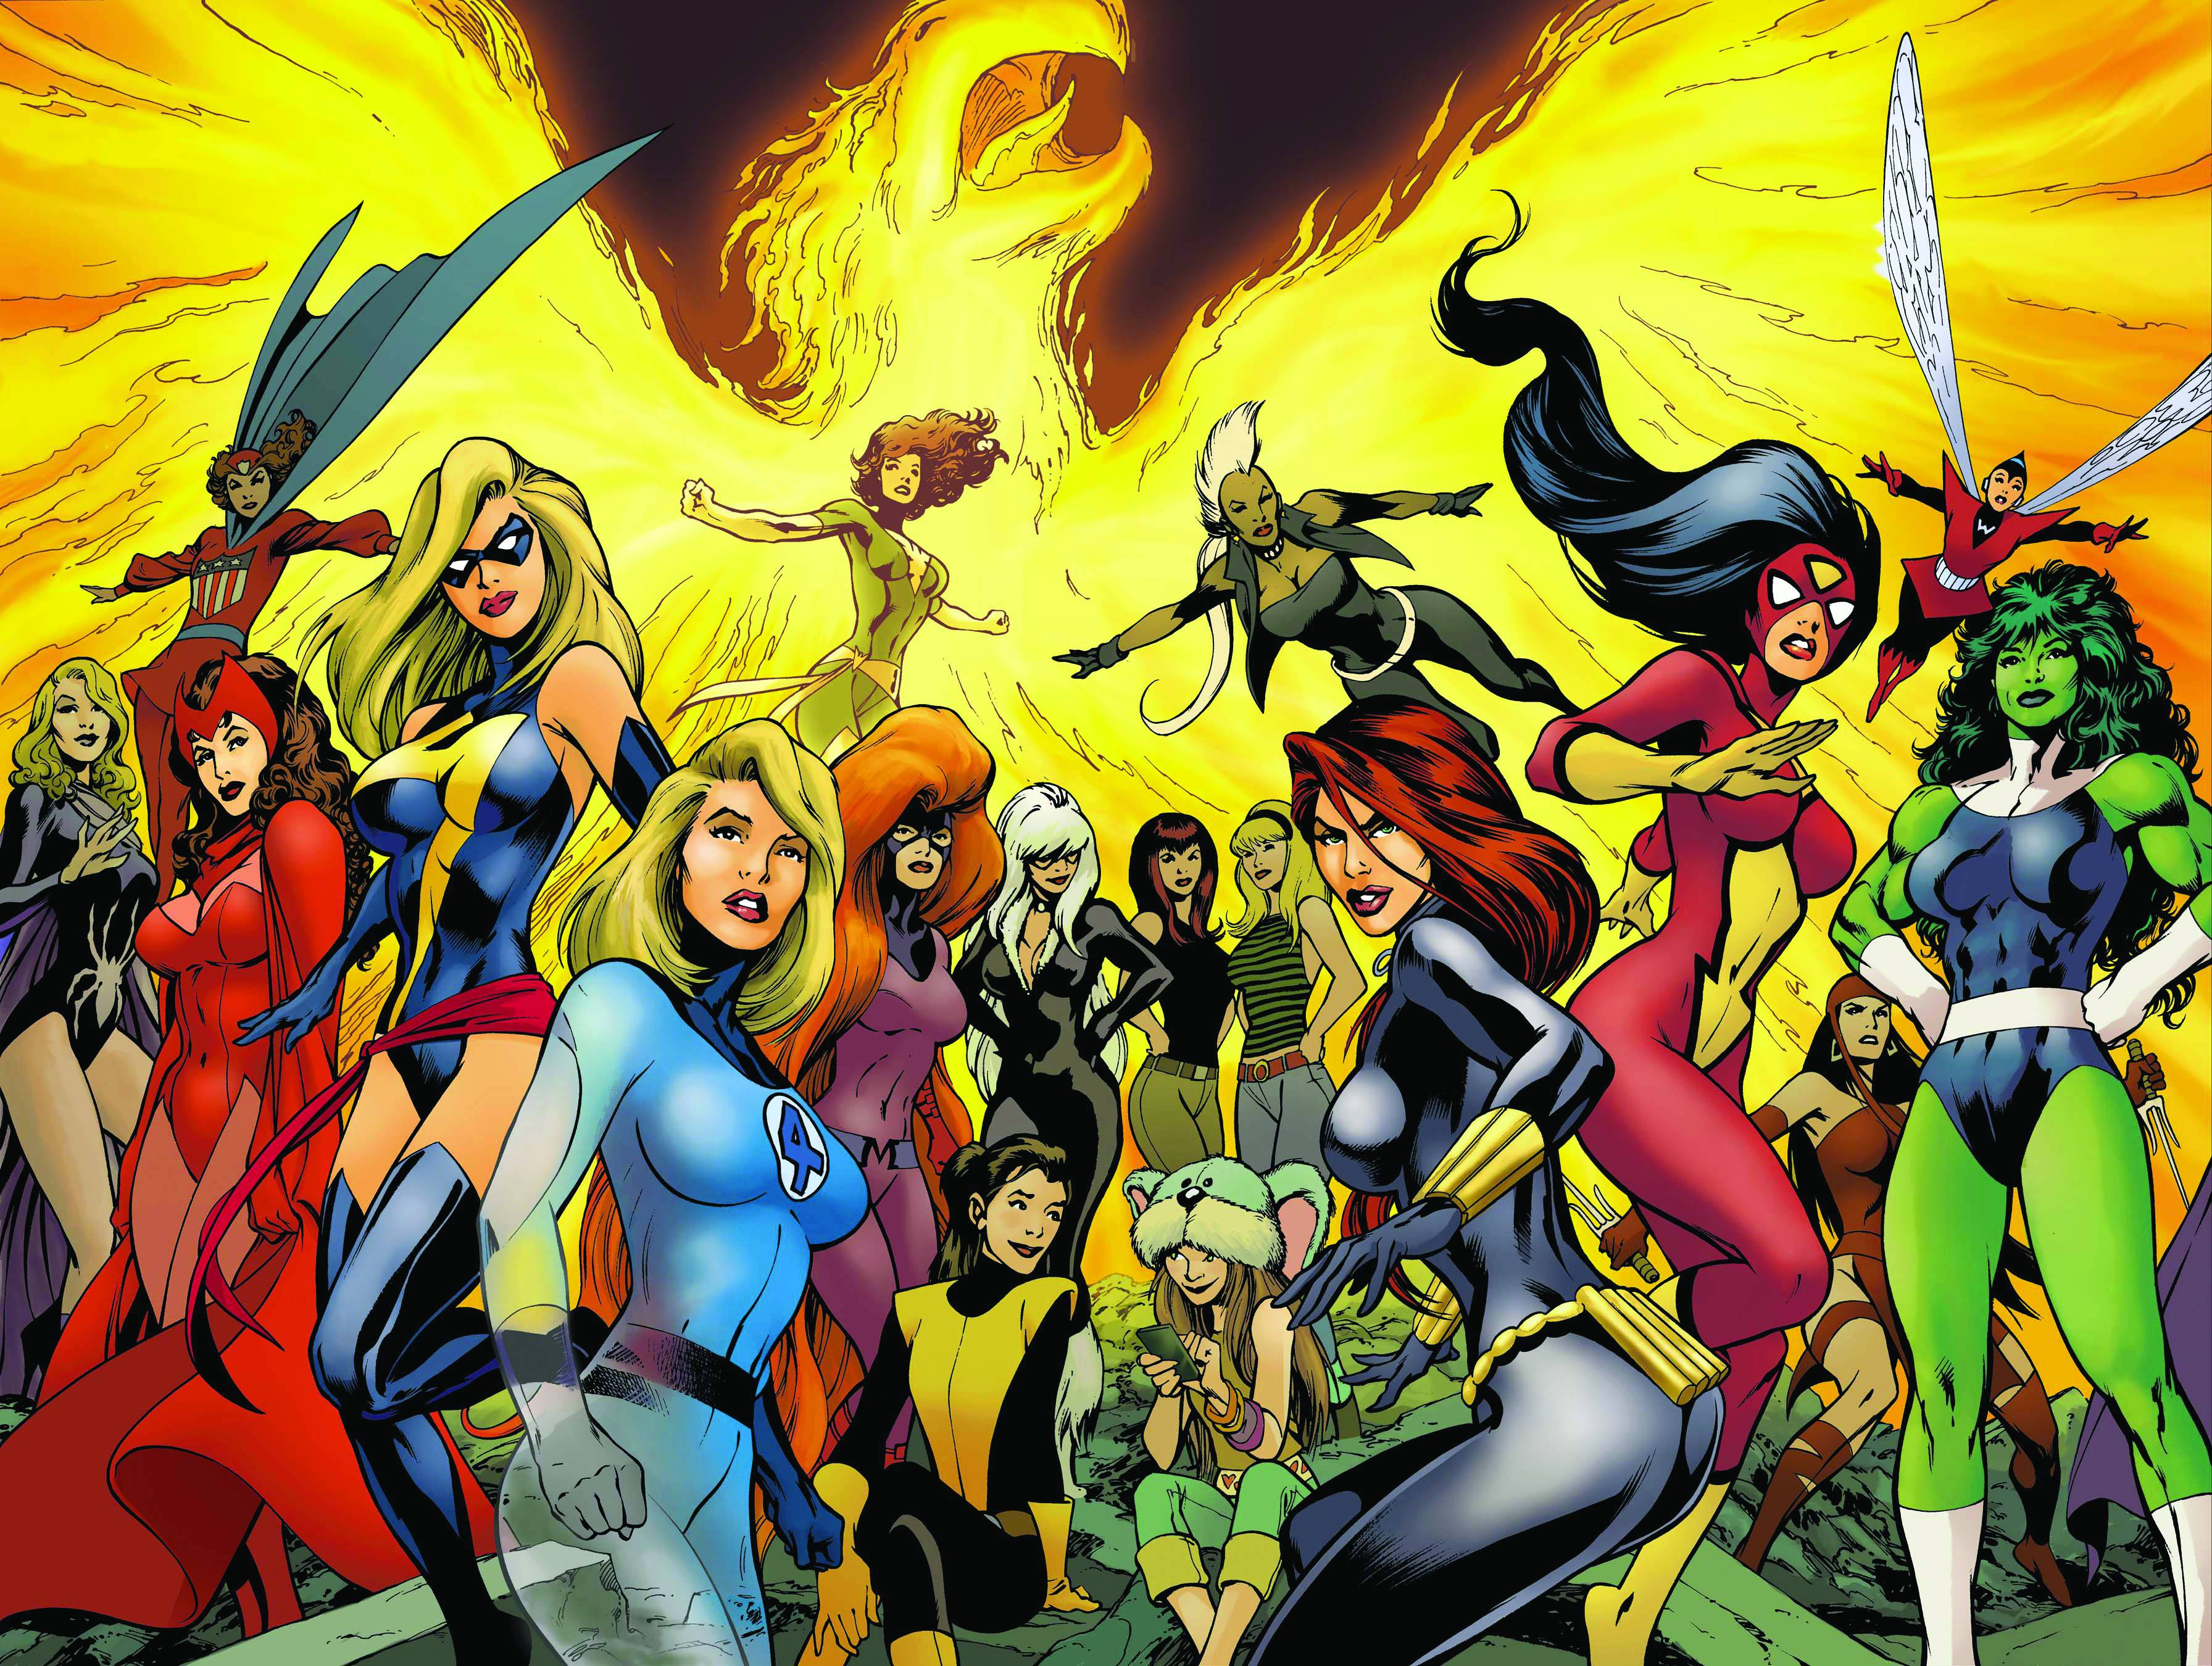 WOMEN OF MARVEL CELEBRATING SEVEN DECADES